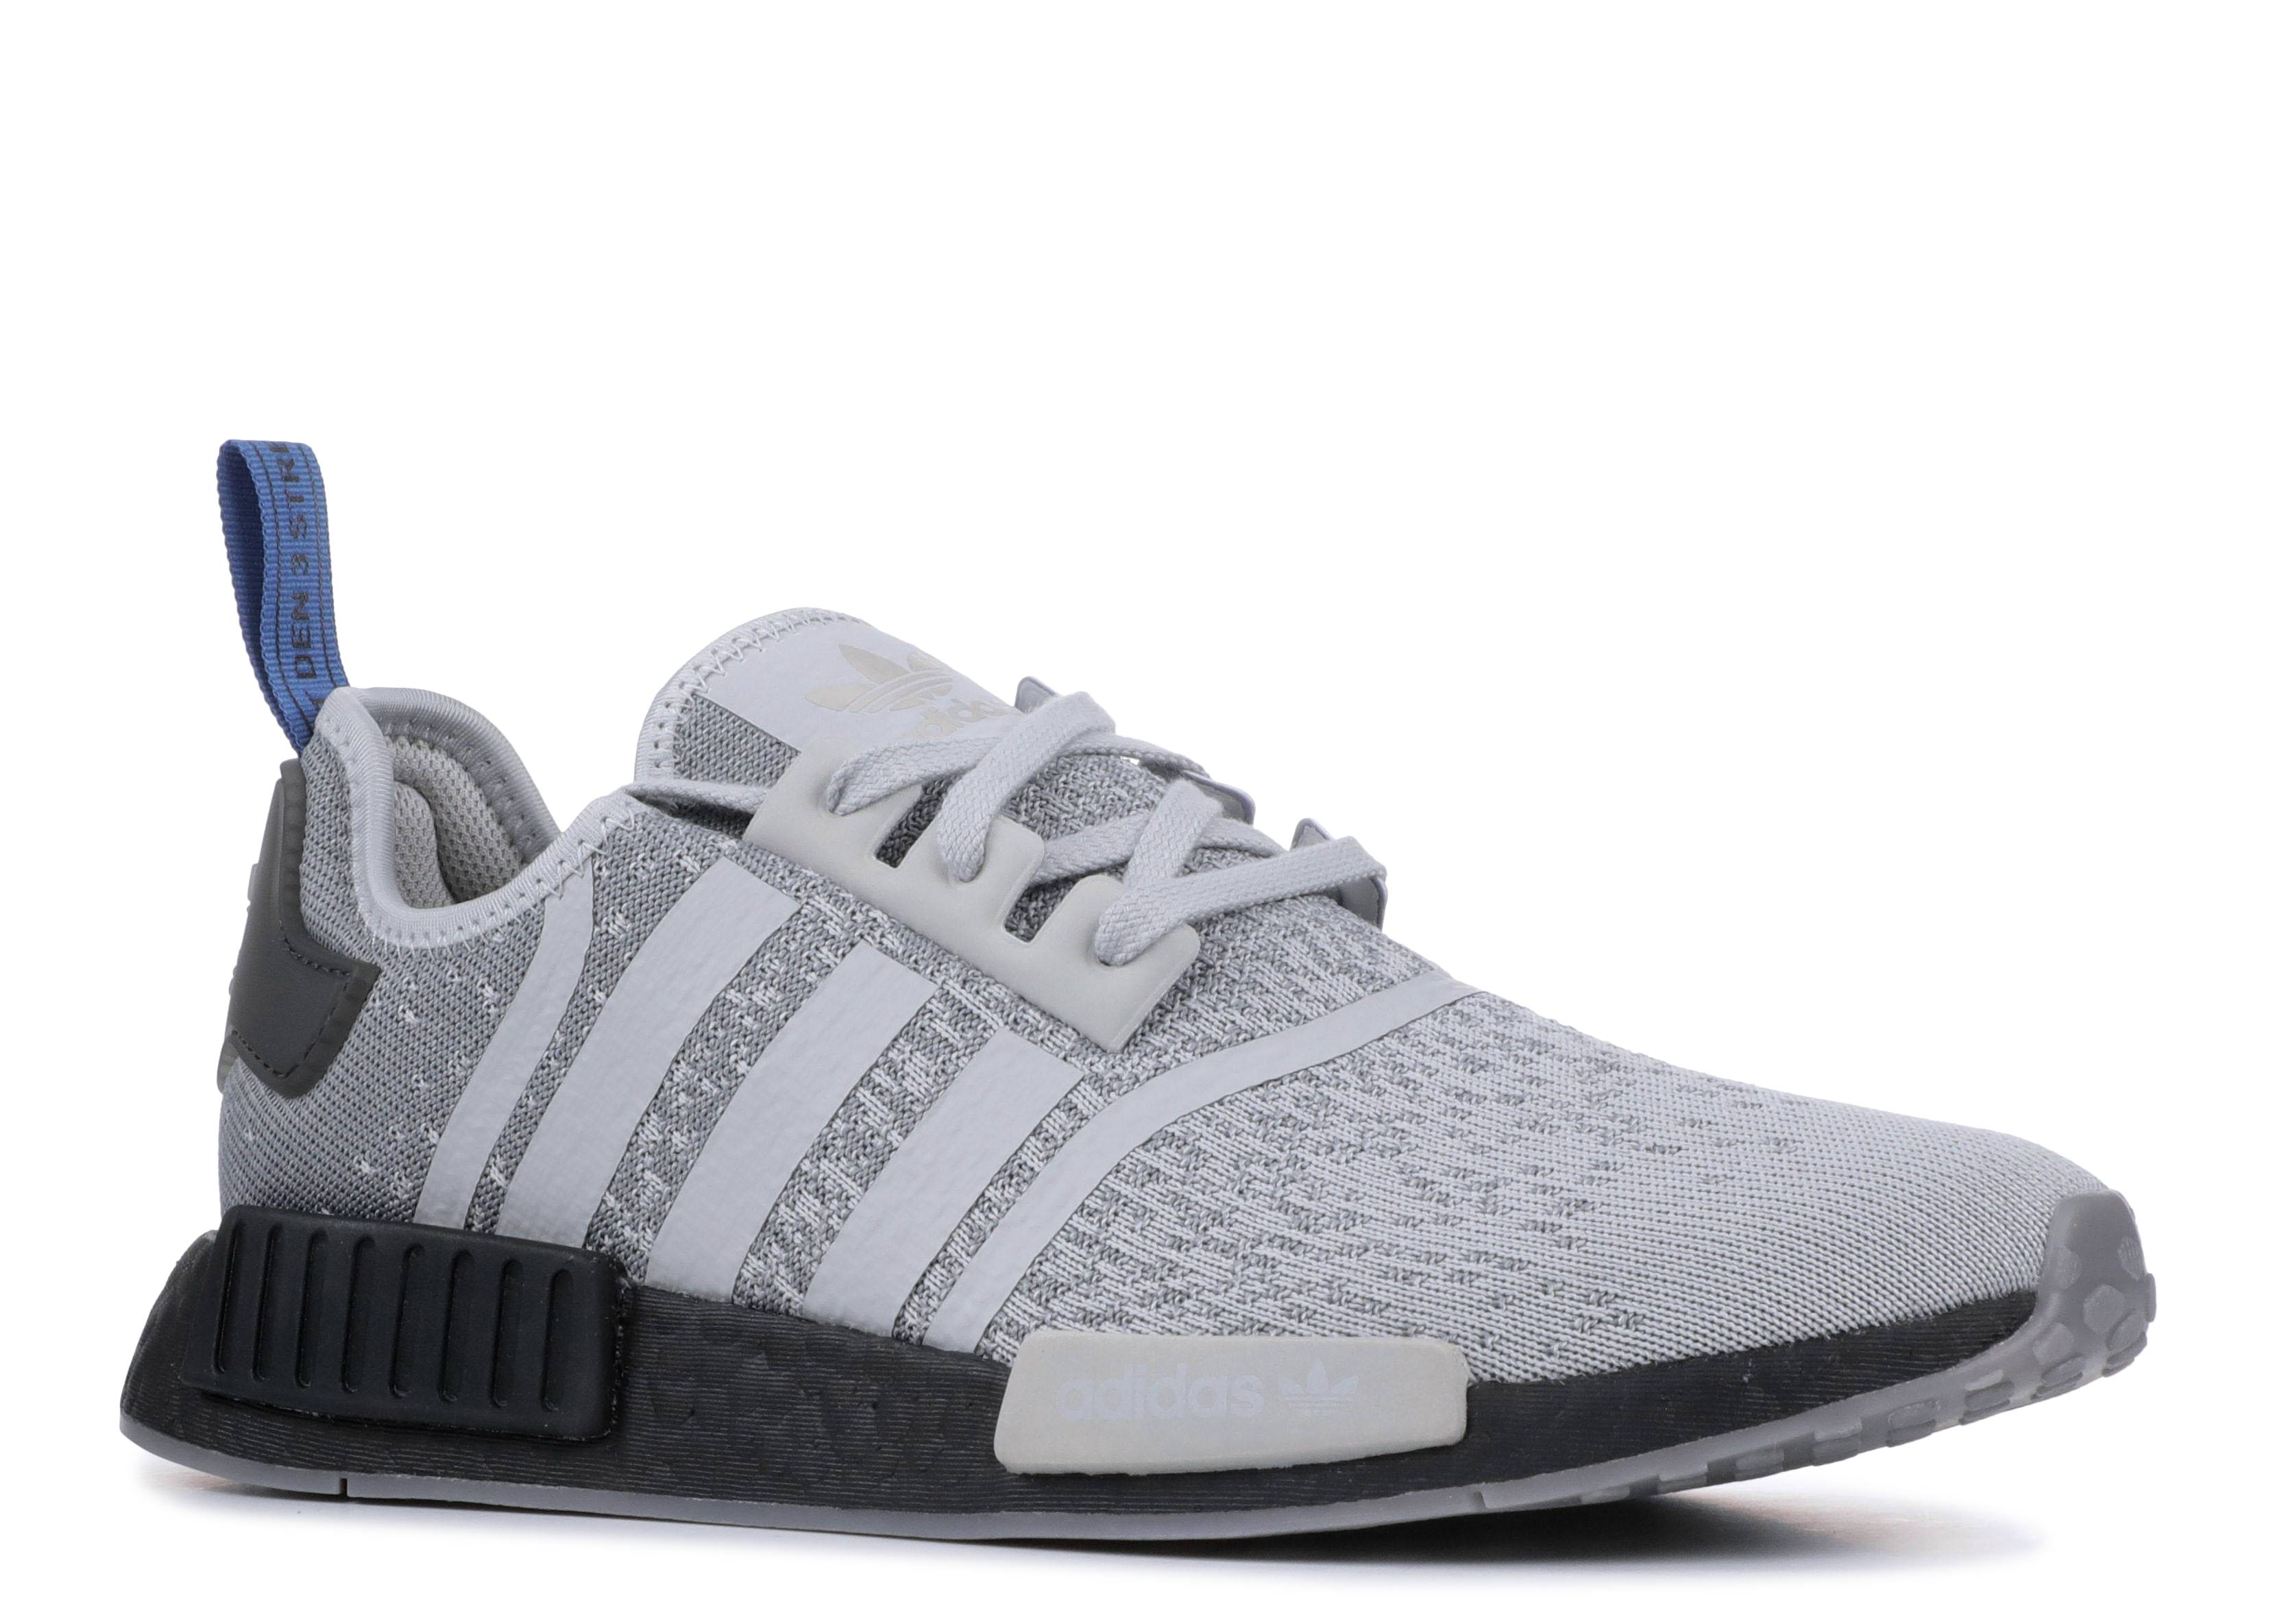 release date be92c c9bbc JD Sports X NMD_R1 'Silver Black Royal'